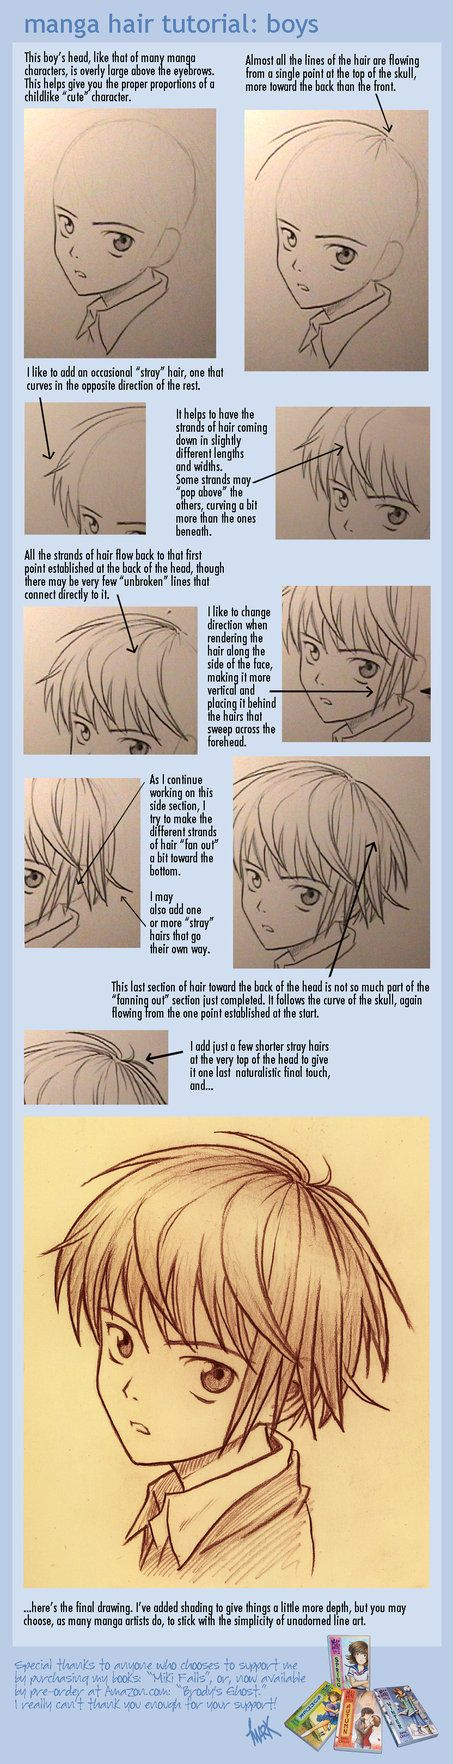 manga hair tutorial: boys by *markcrilley on deviantART